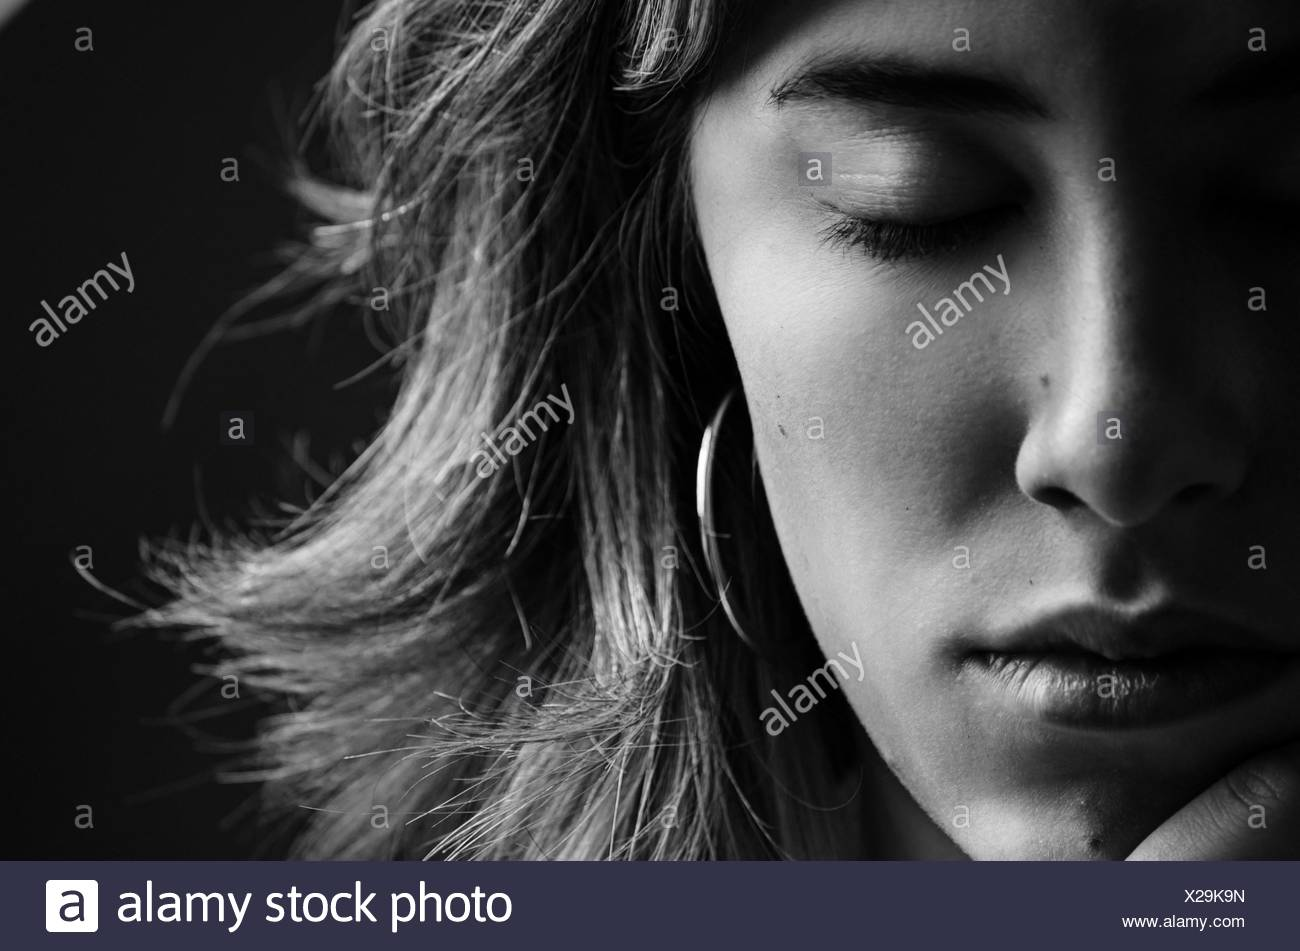 Portrait of young woman with her eyes closed - Stock Image